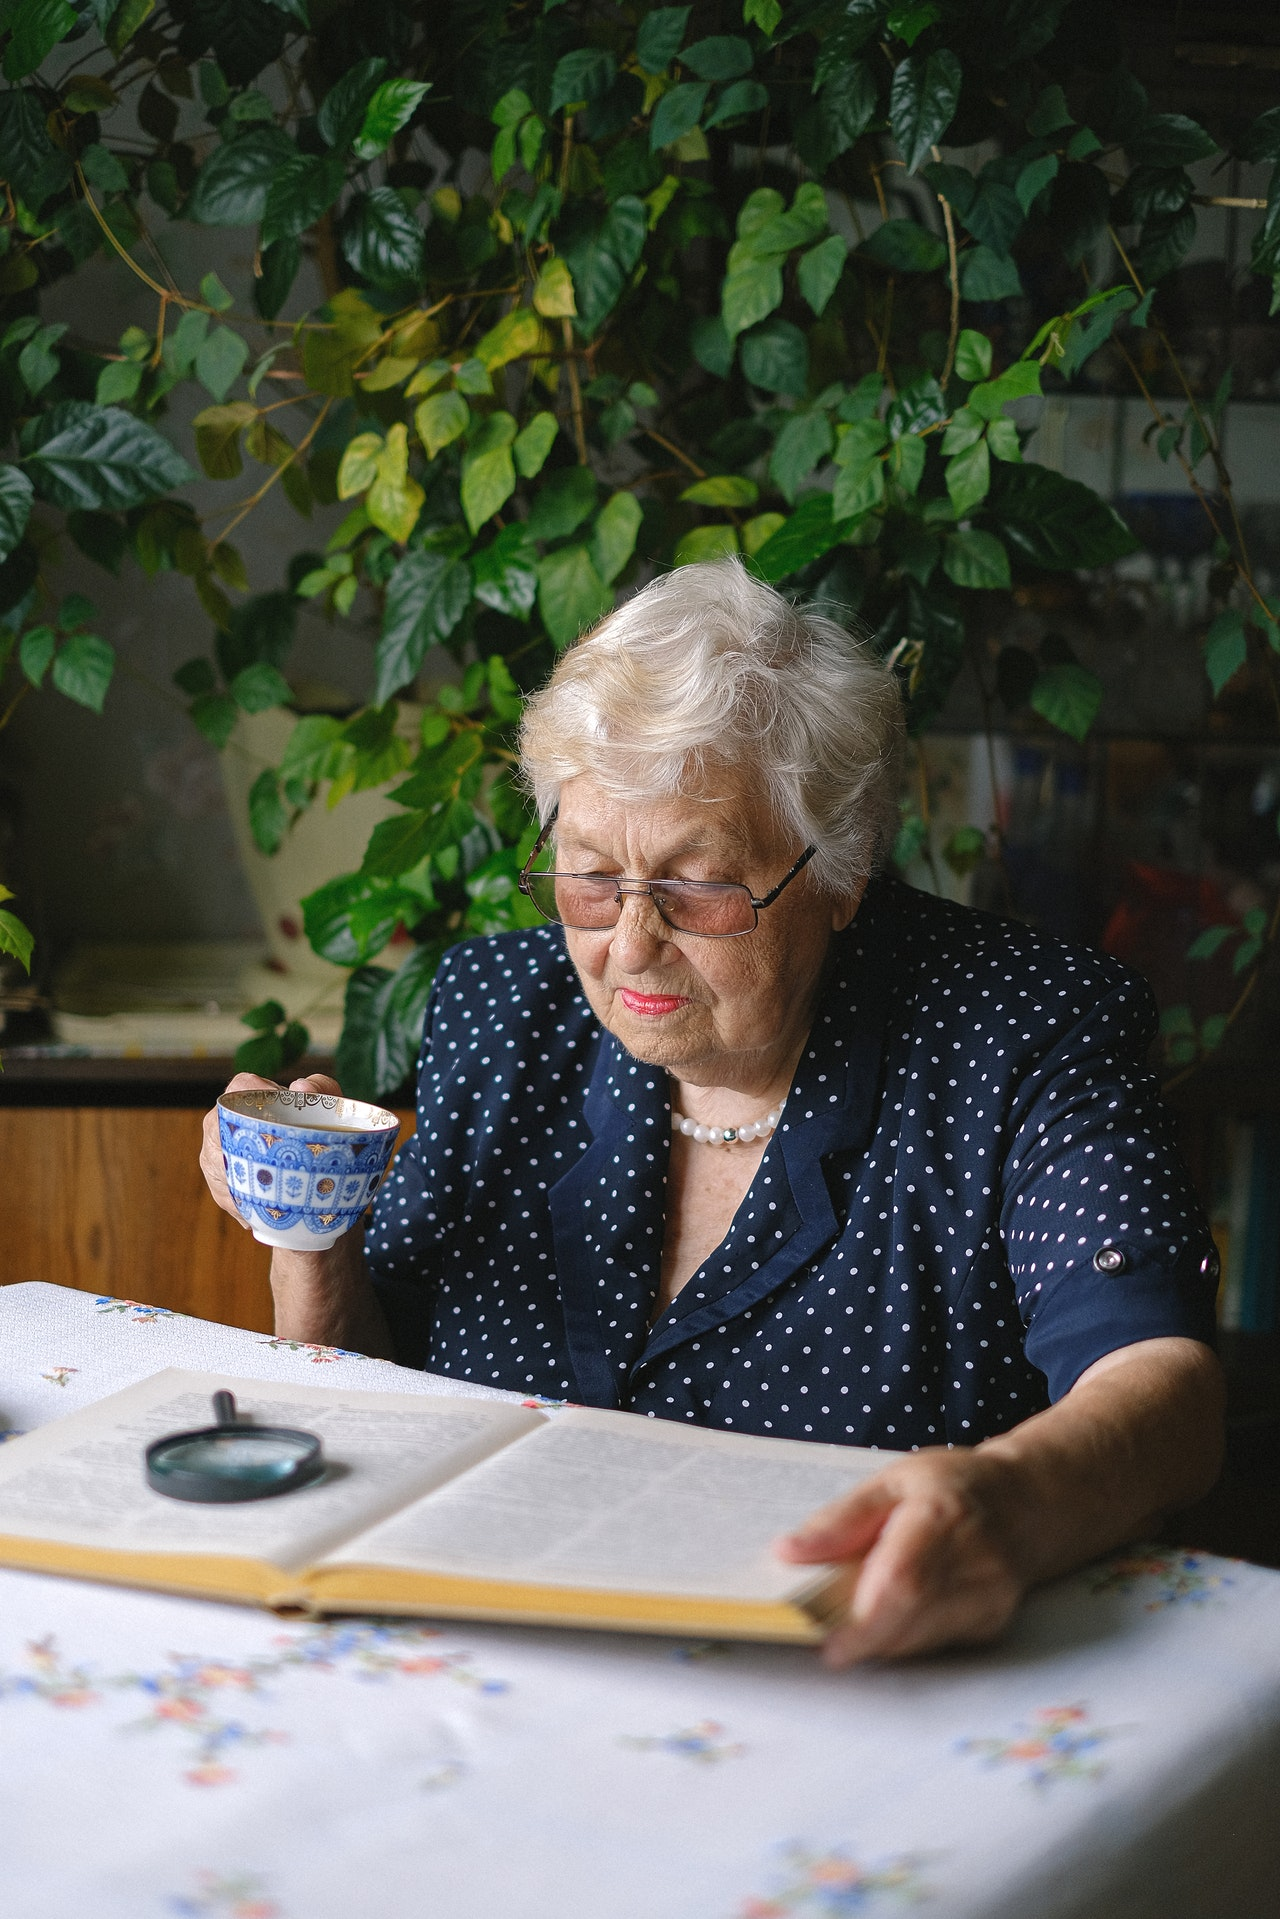 List of interesting and creative hobbies elderly can try